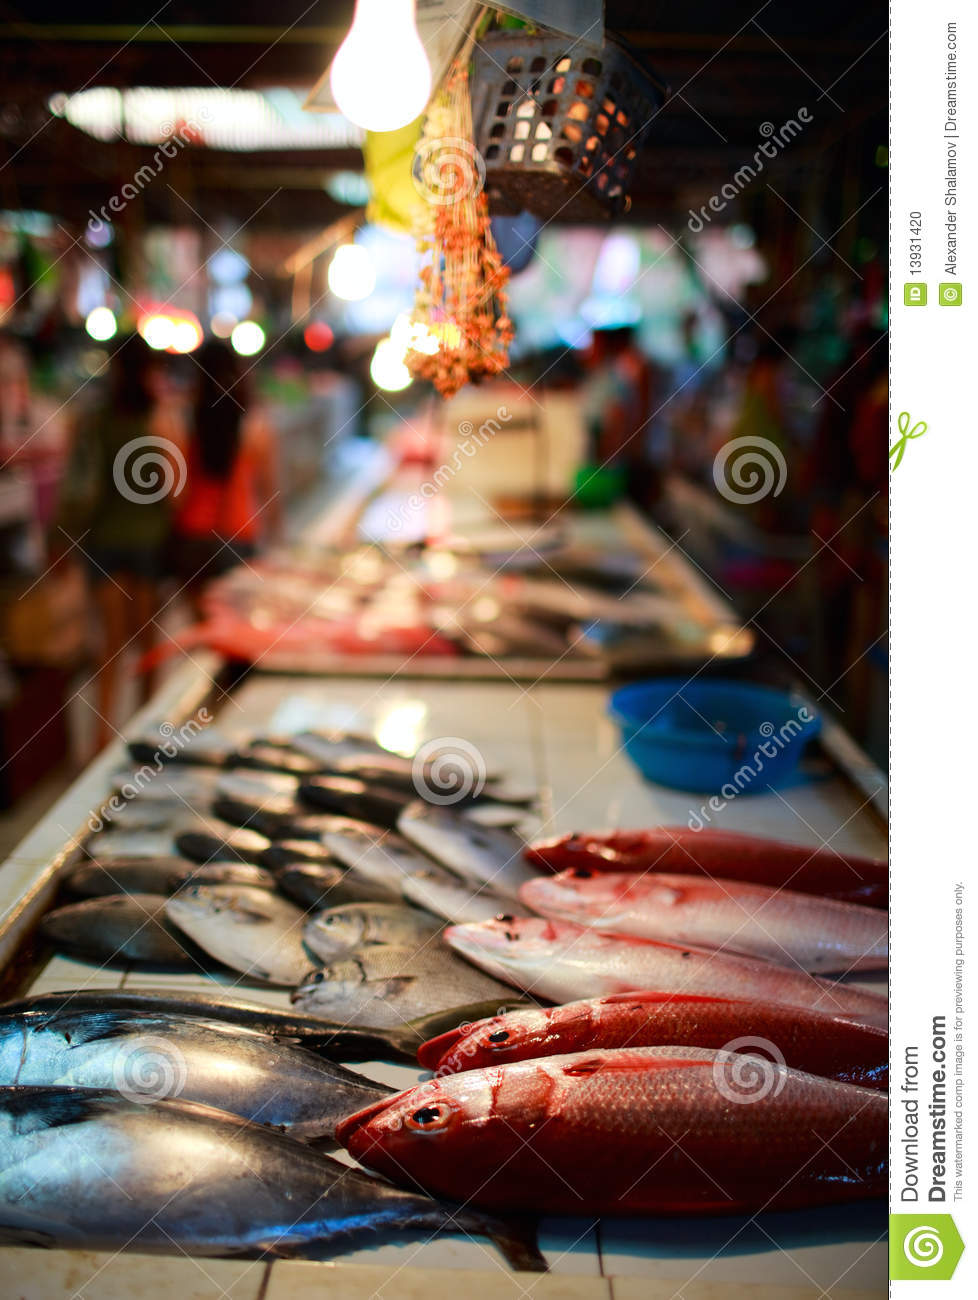 Seafood market stock photo image 13931420 for Cherry street fish market